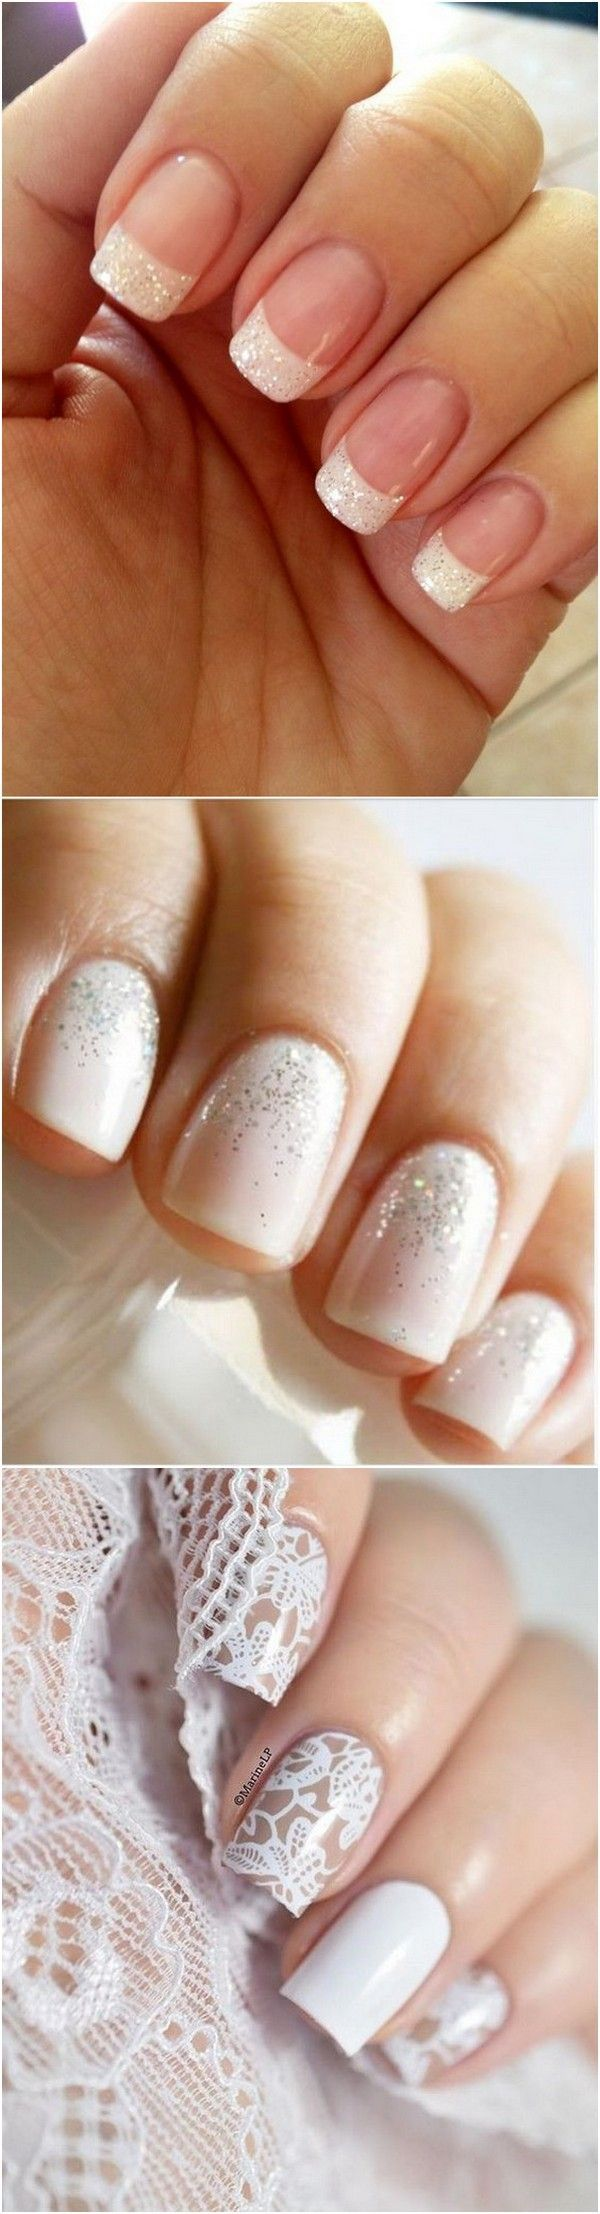 Trending elegant wedding bridal nail ideas weddingnails